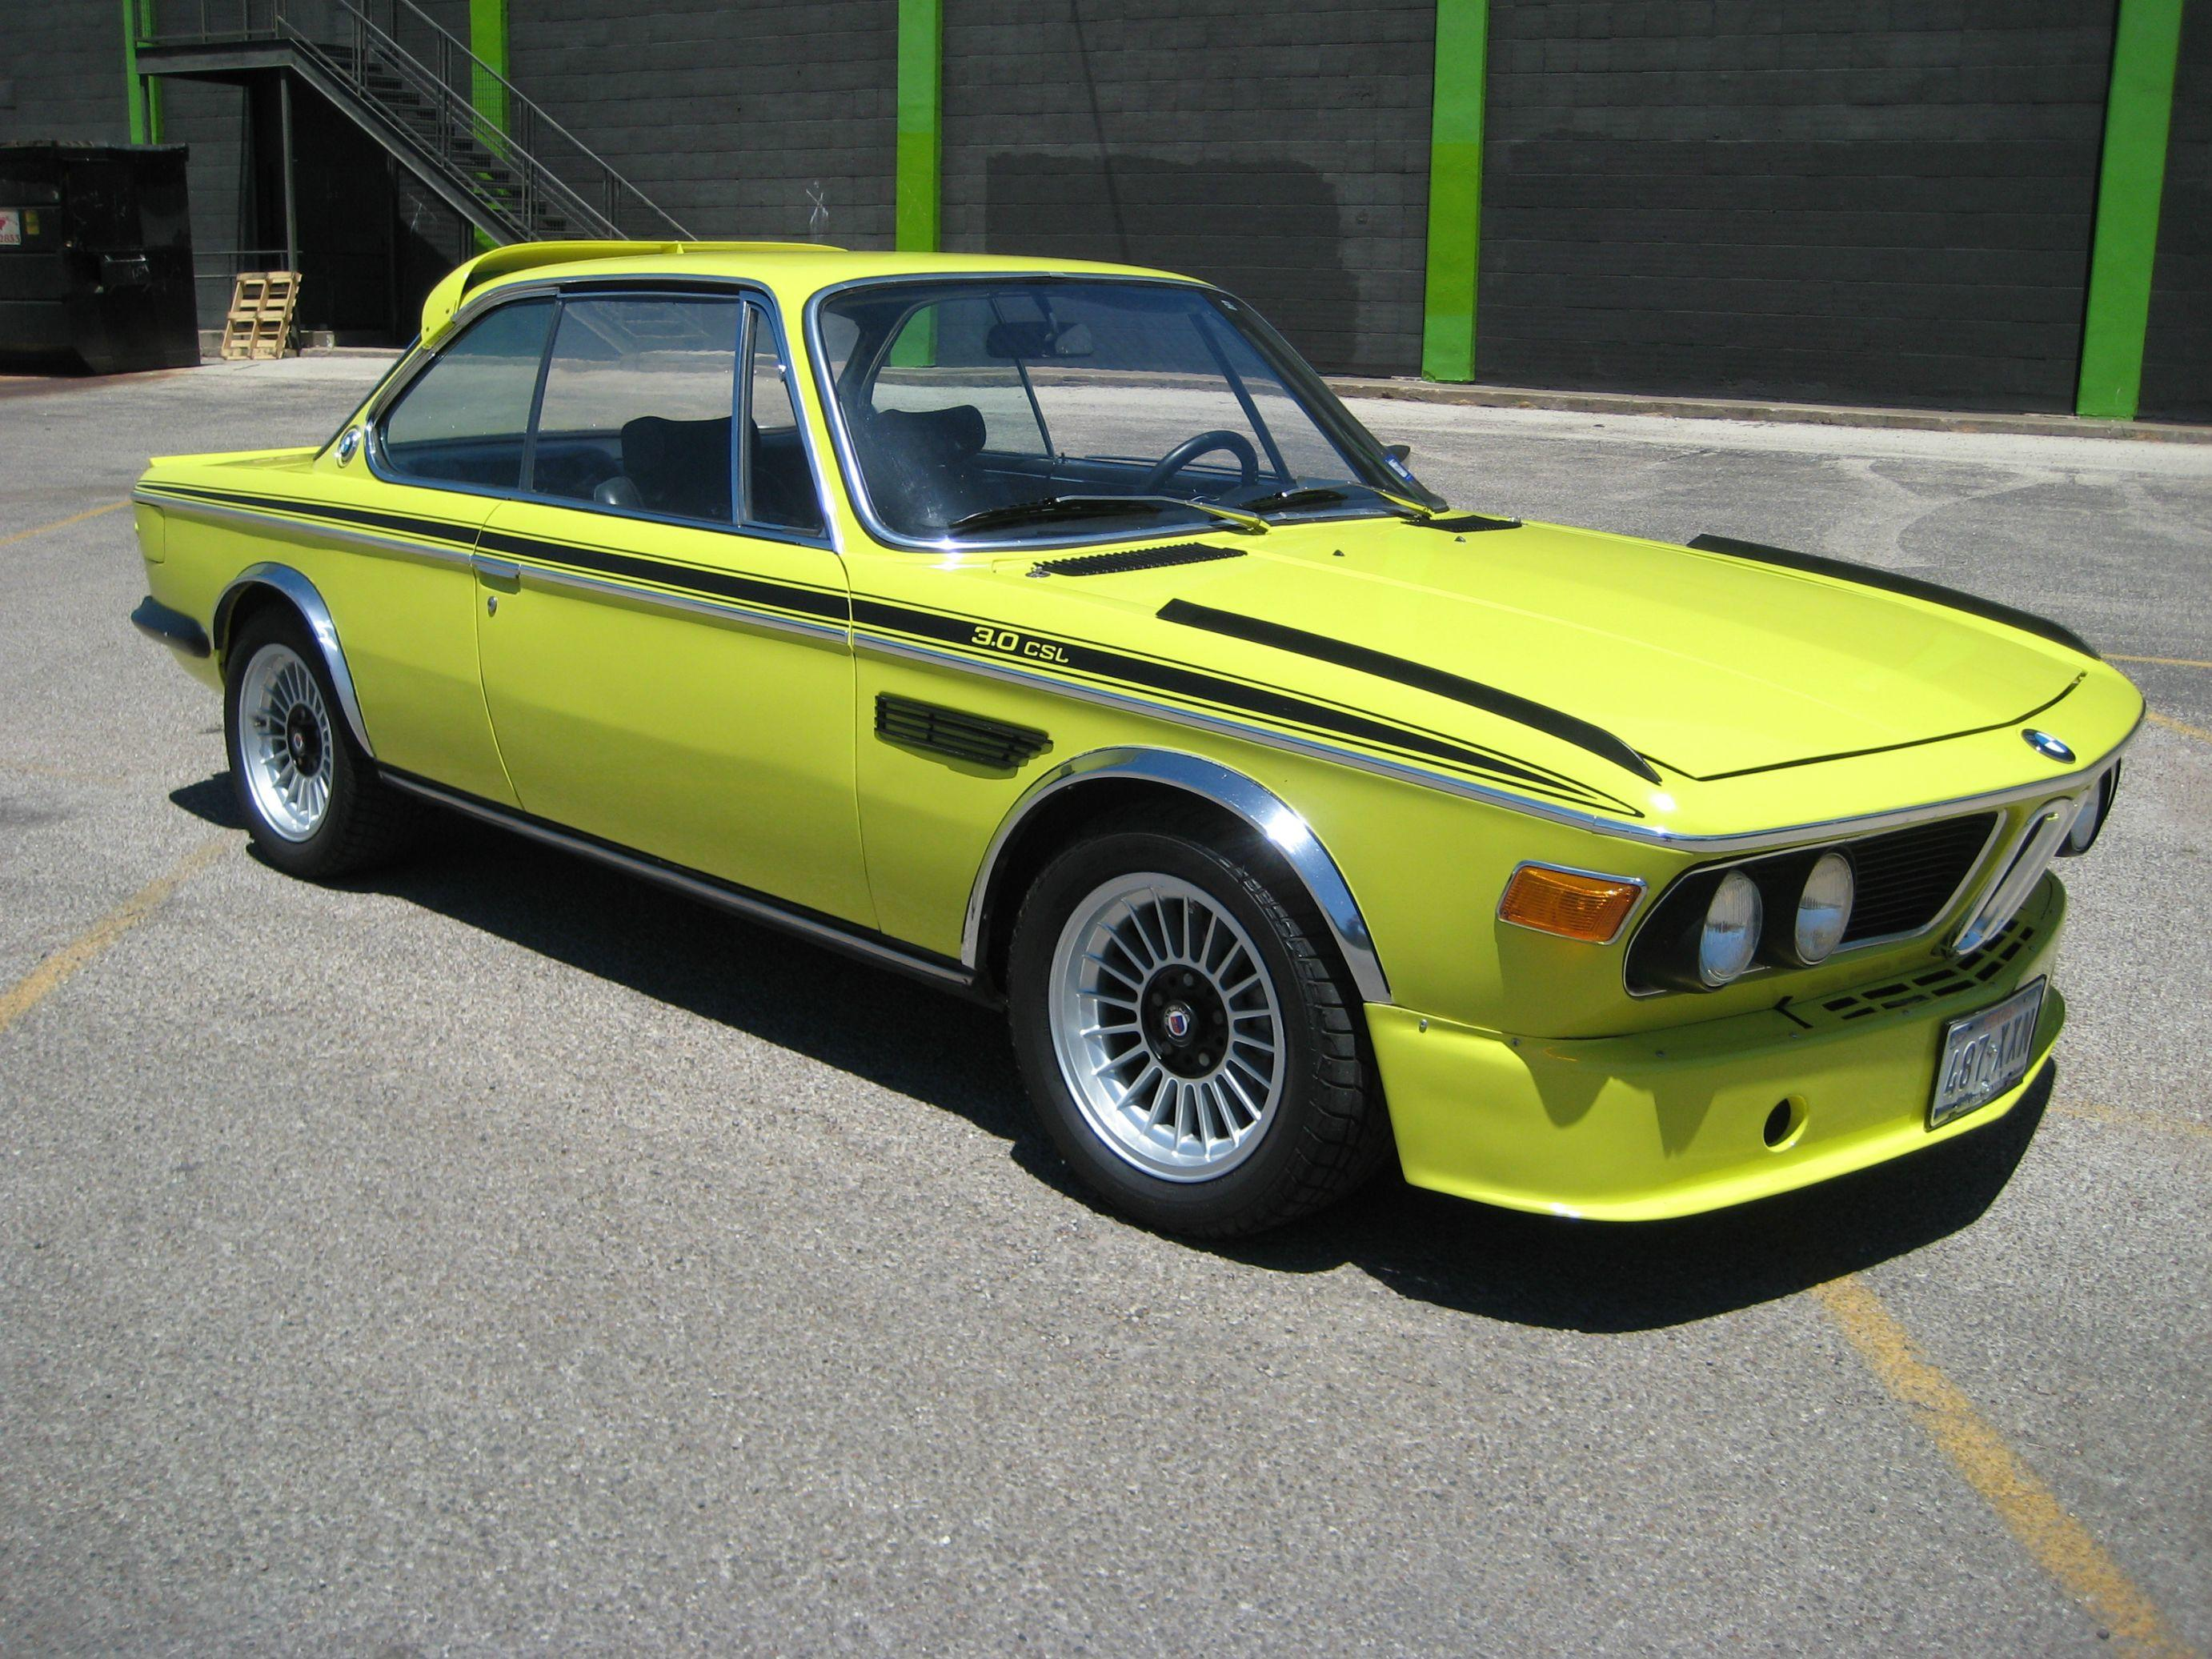 A Classic 1972 BMW 3.0CSL dressed in a lime yellow color